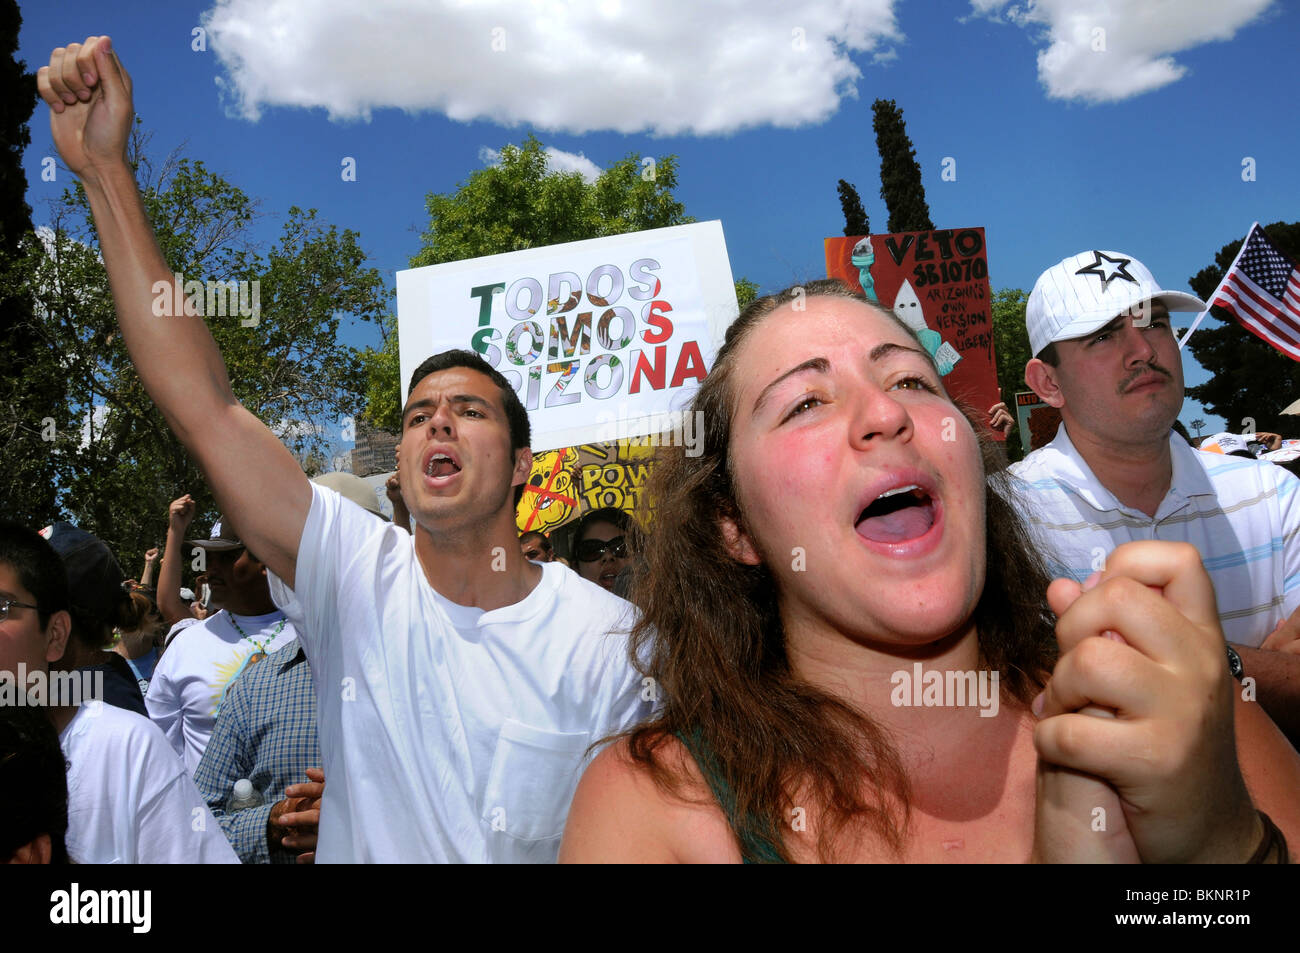 La Gran Marcha on May 1, 2010, in Tucson, Arizona, USA, protesting the bill SB1070 that targets illegal immigration. Stock Photo